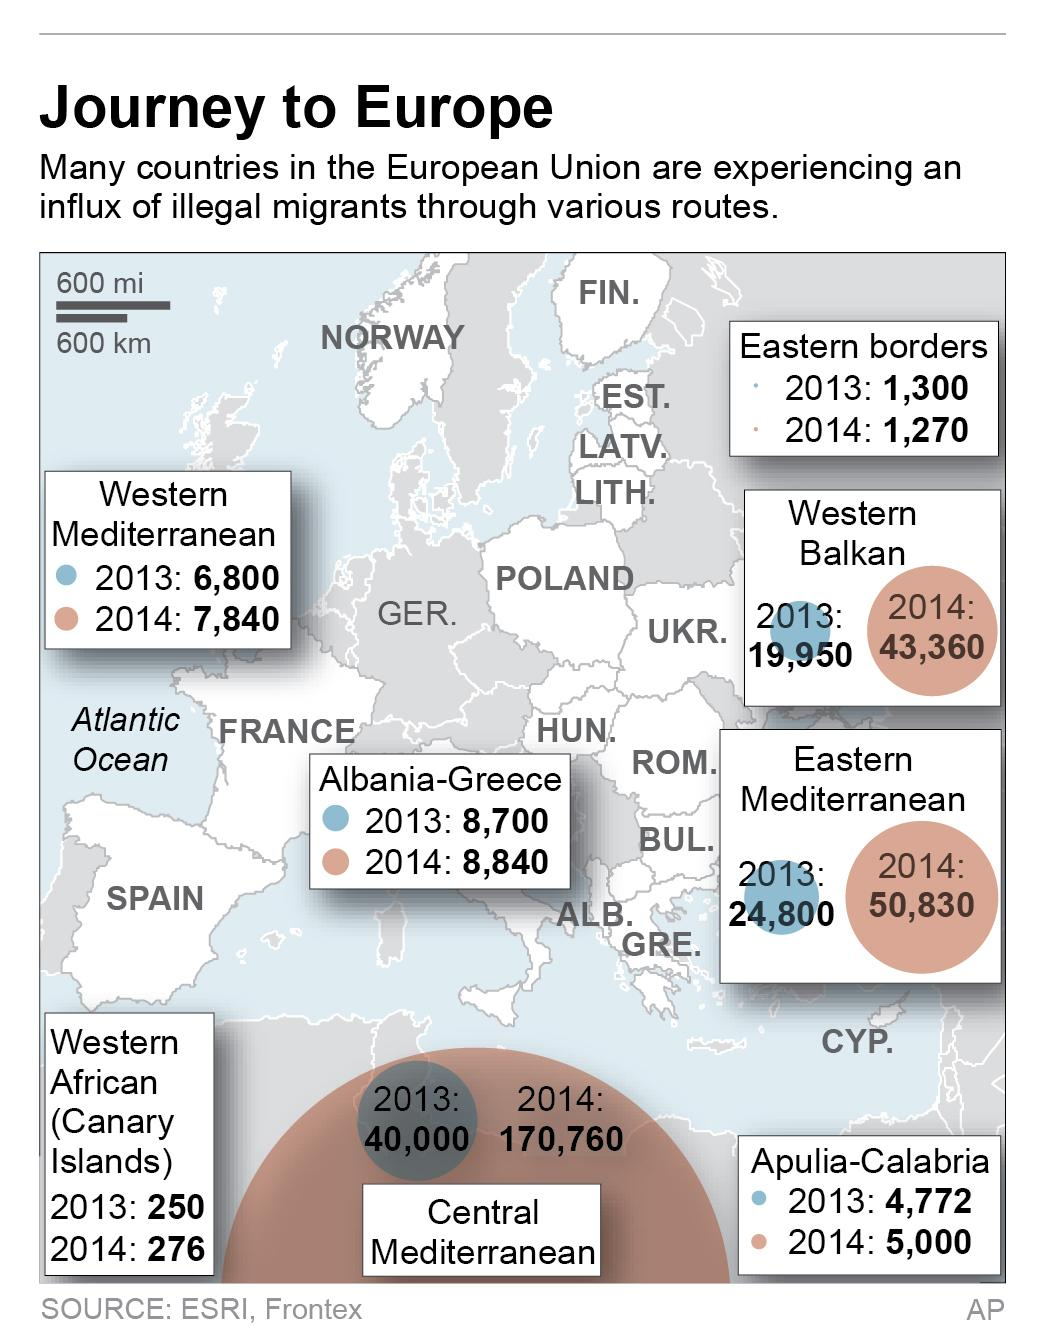 World's huddled masses use 4 key land, sea routes to Europe